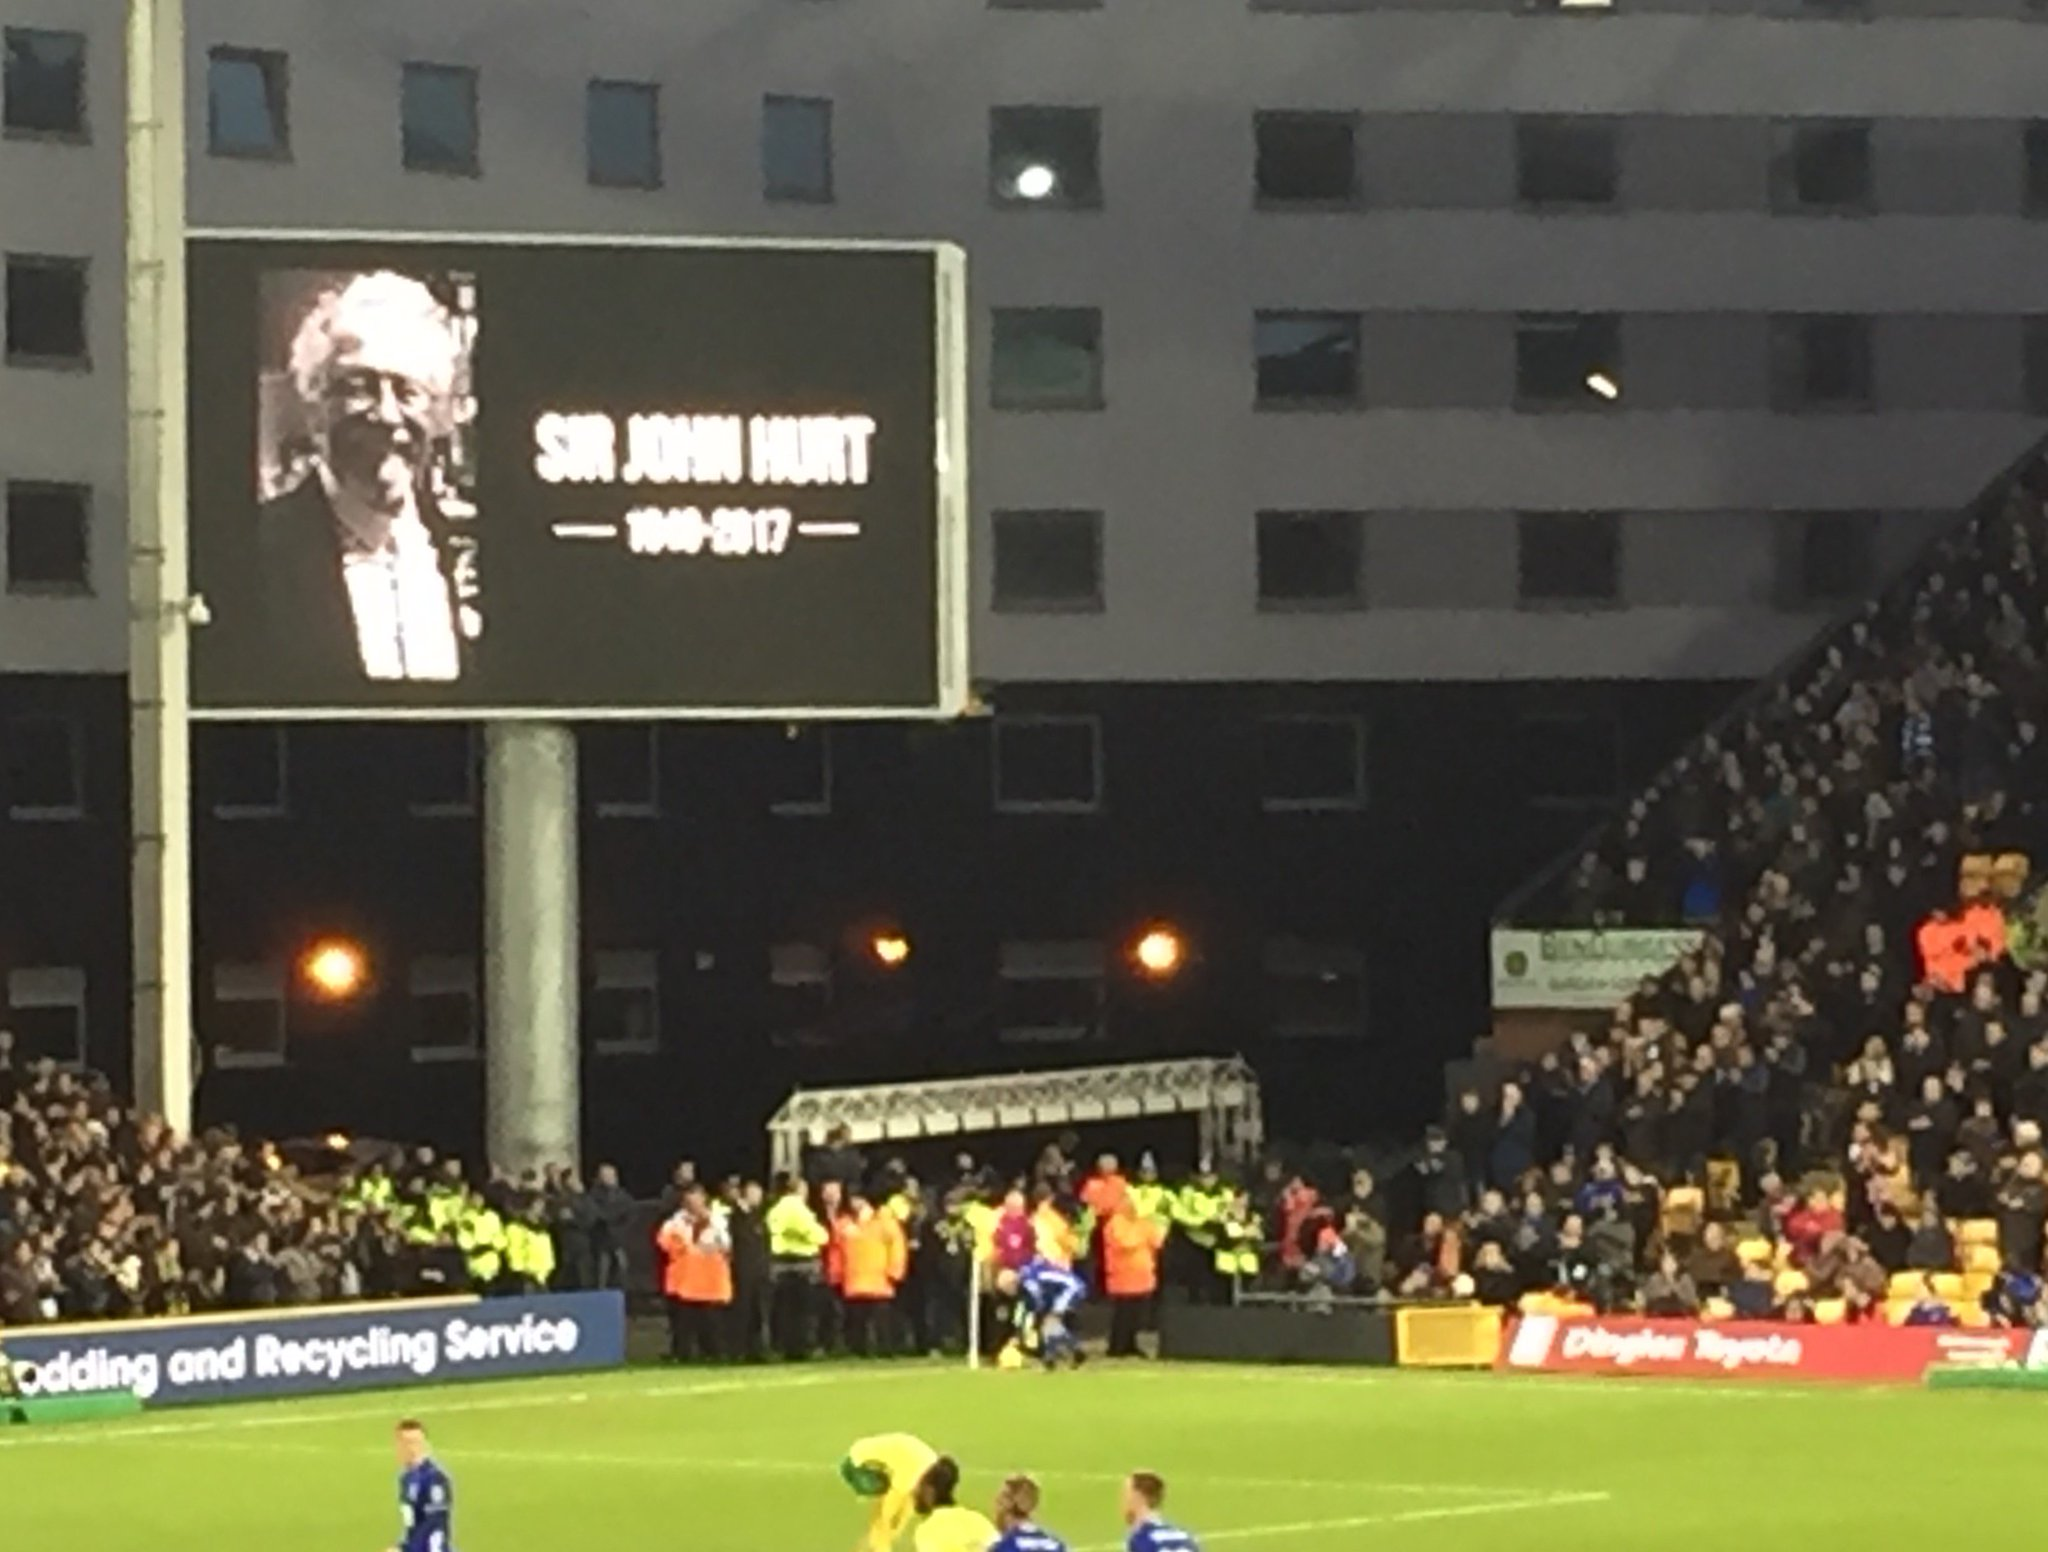 Carrow Road this afternoon. Tribute paid by @NorwichCityFC to a great fan & great man. The Canaries won for him too! https://t.co/dpxFJW8YHd